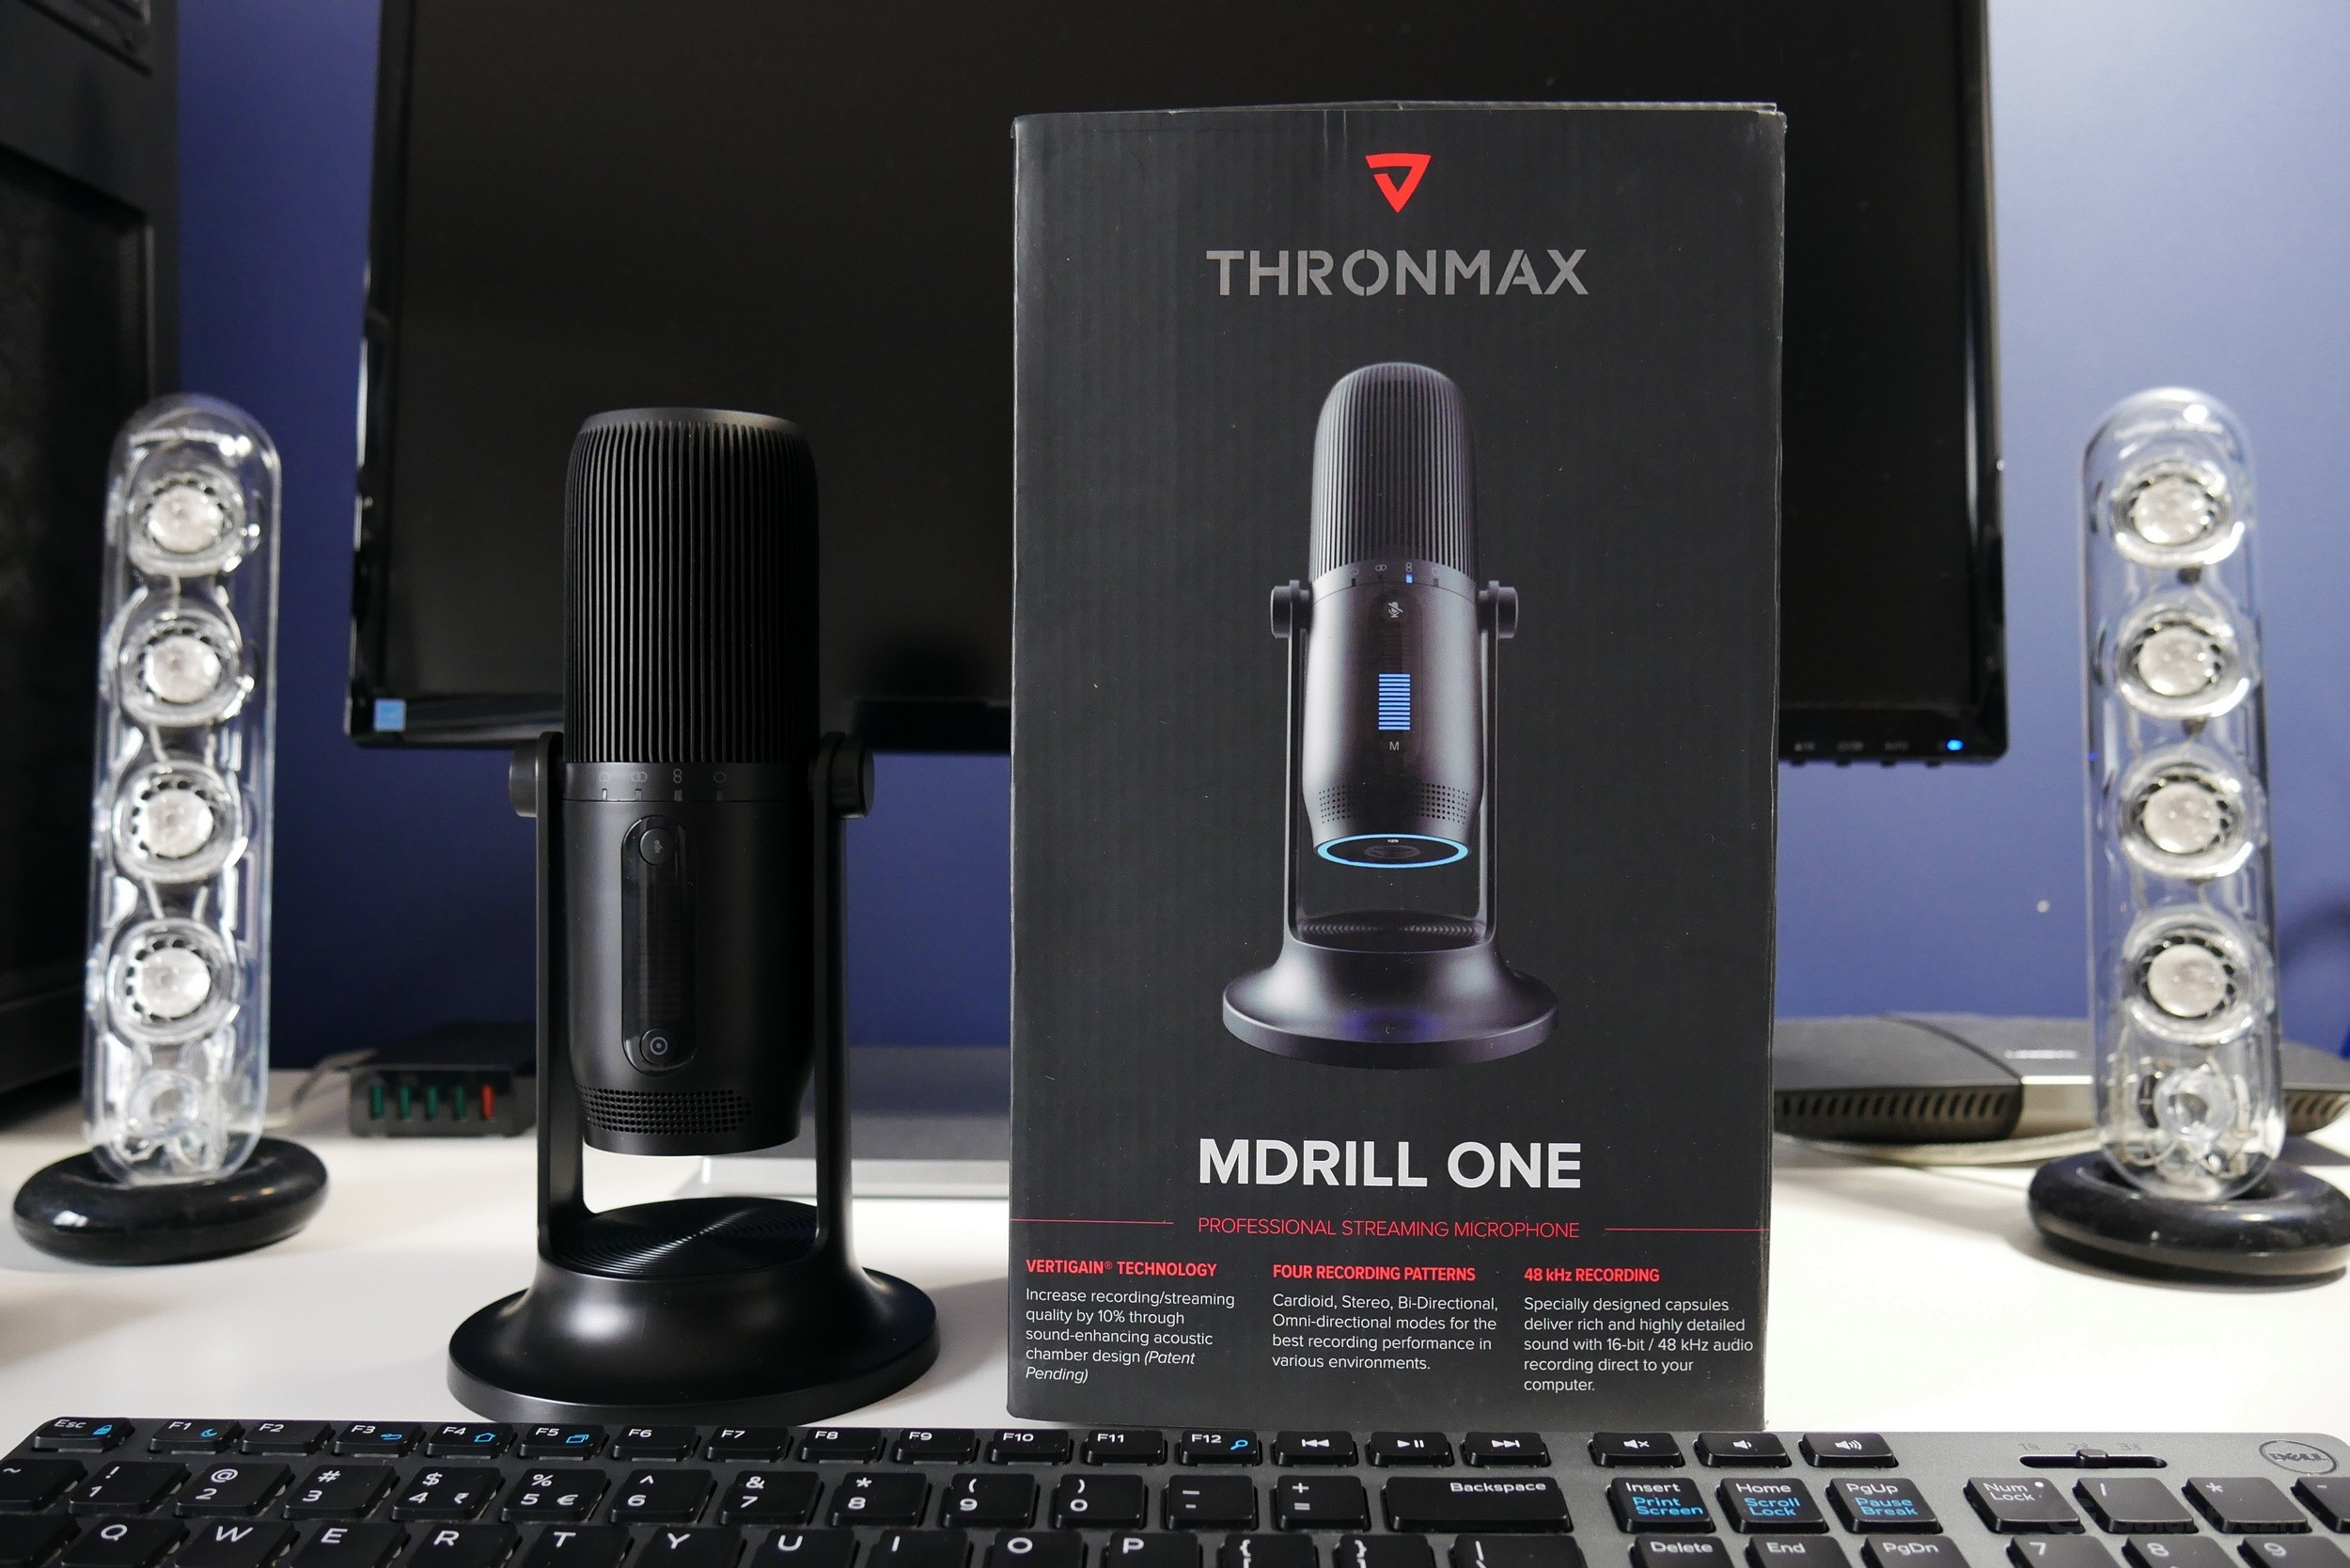 Thronmax MDrill One